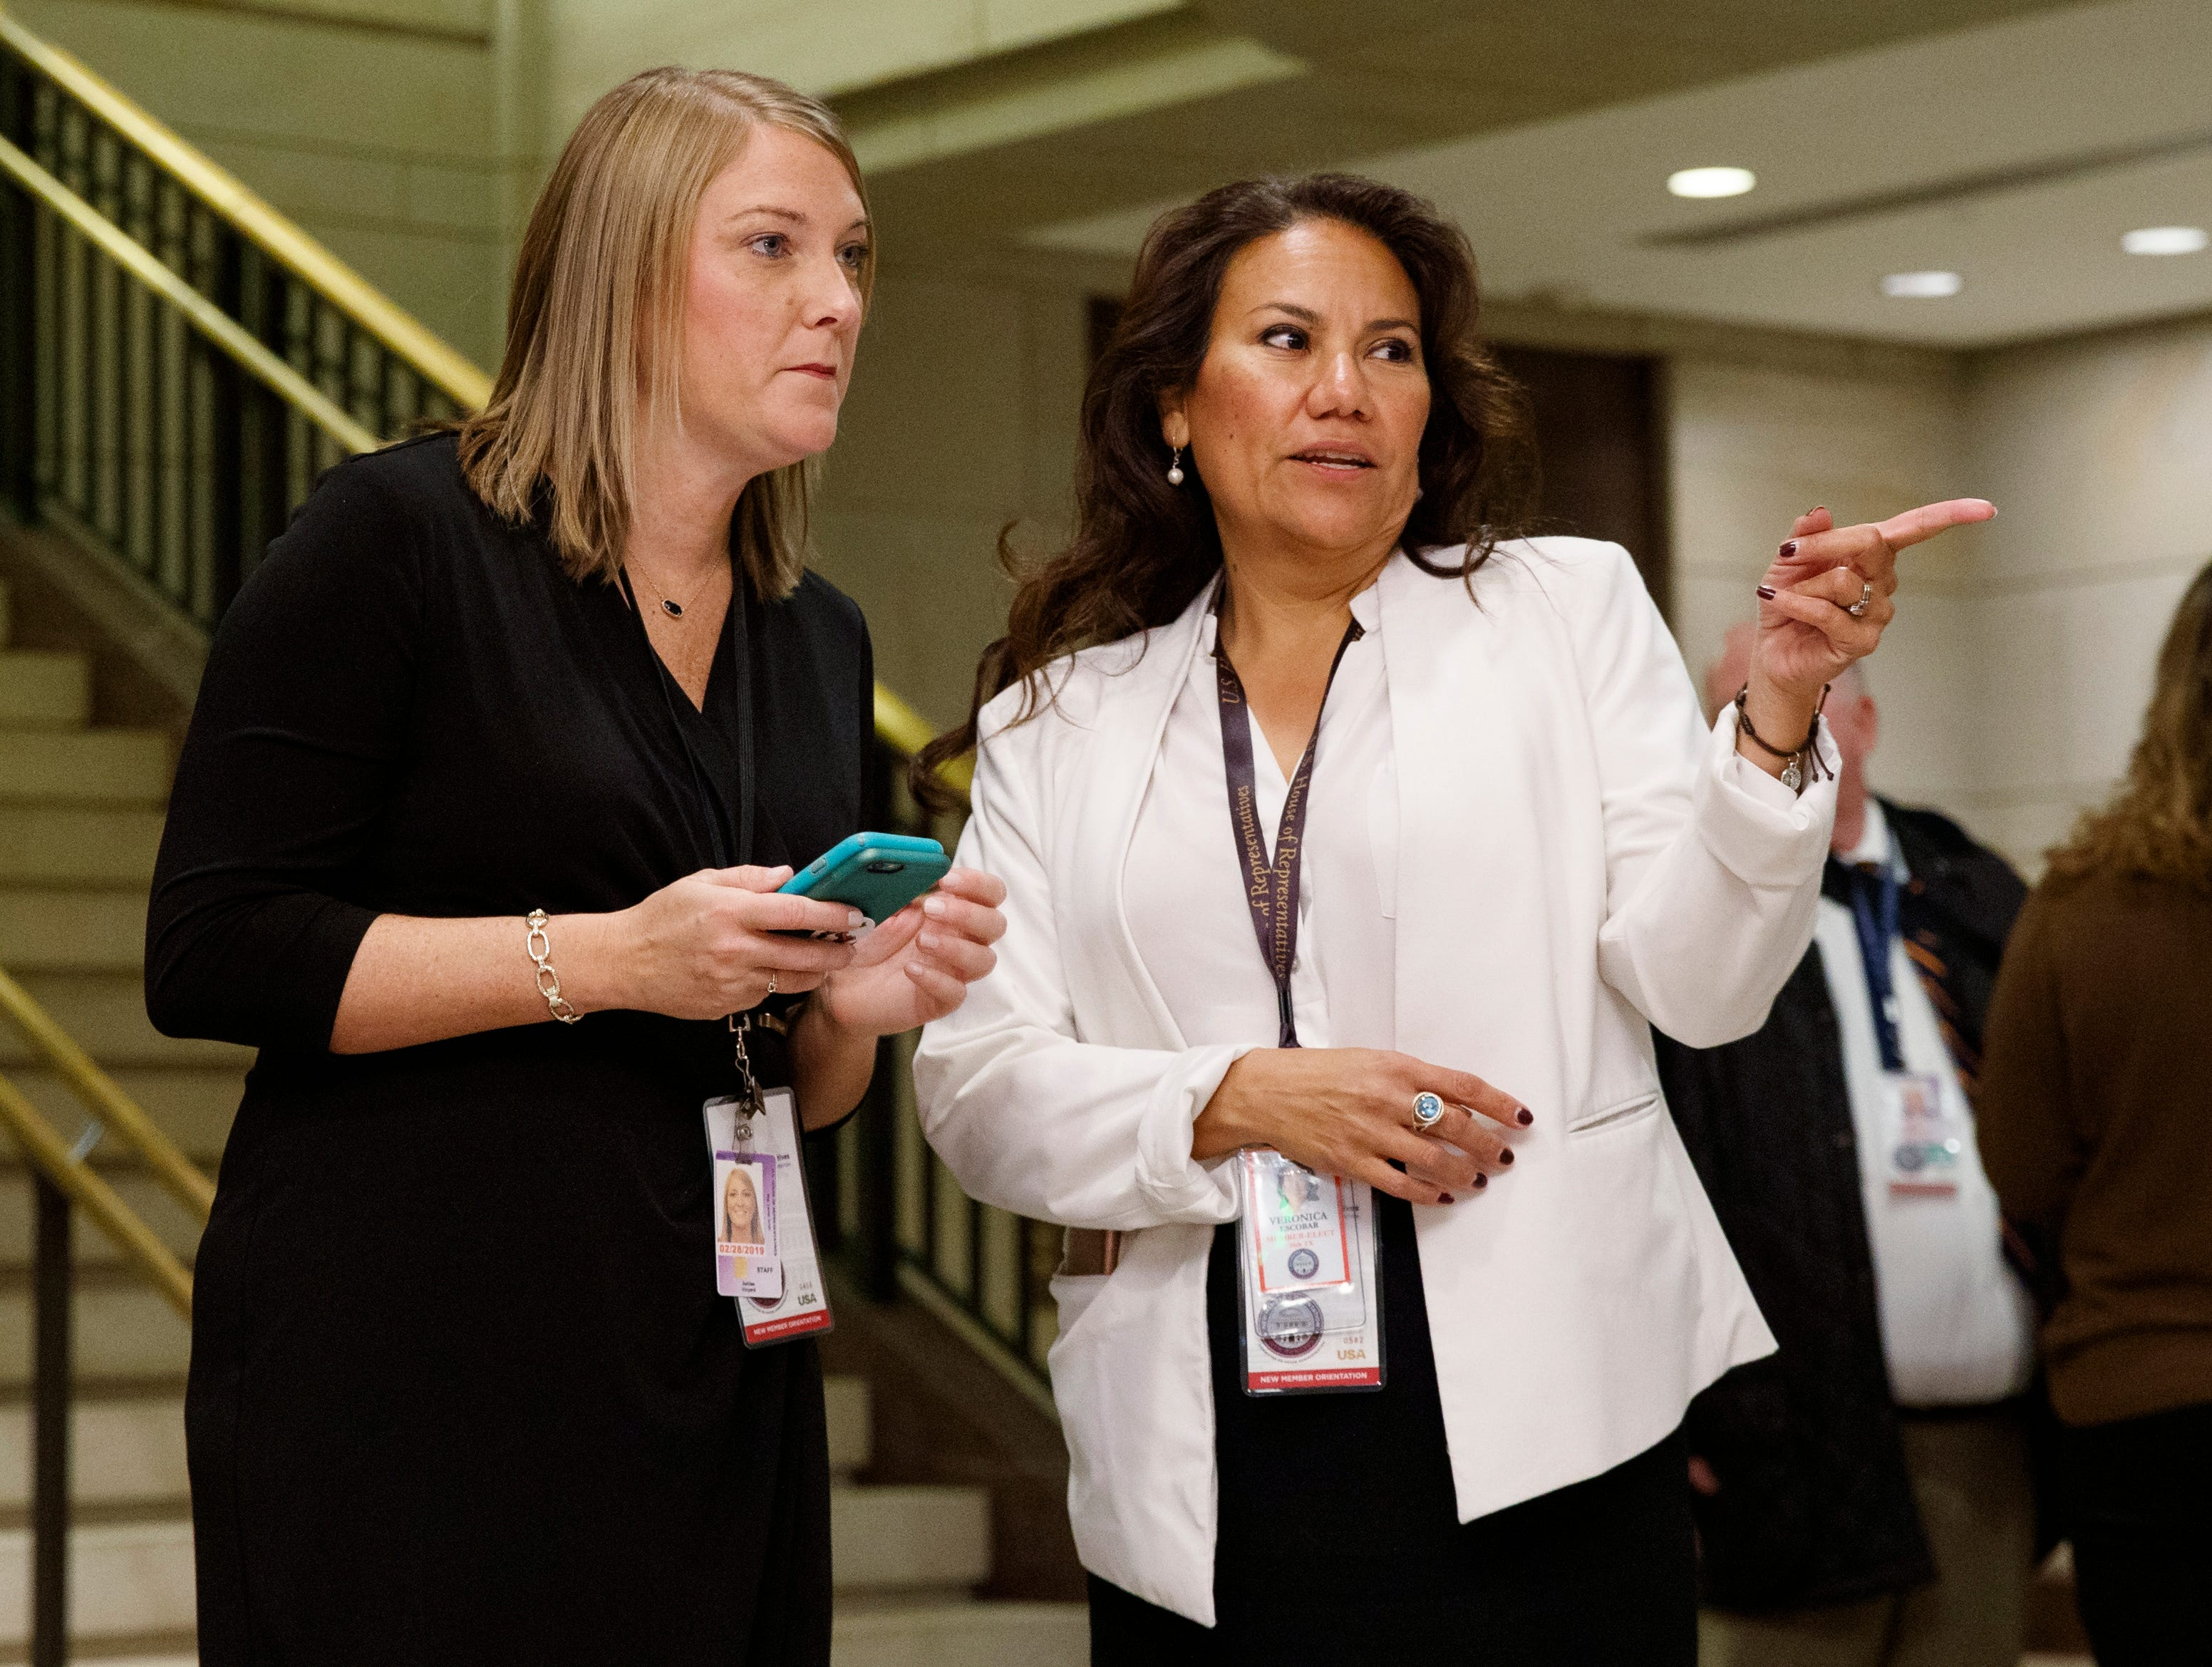 U.S. Rep.-elect Veronica Escobar, D-El Paso, asks questions as she arrives for member-elect briefings Thursday, Nov. 15, 2018, on Capitol Hill in Washington, D.C.